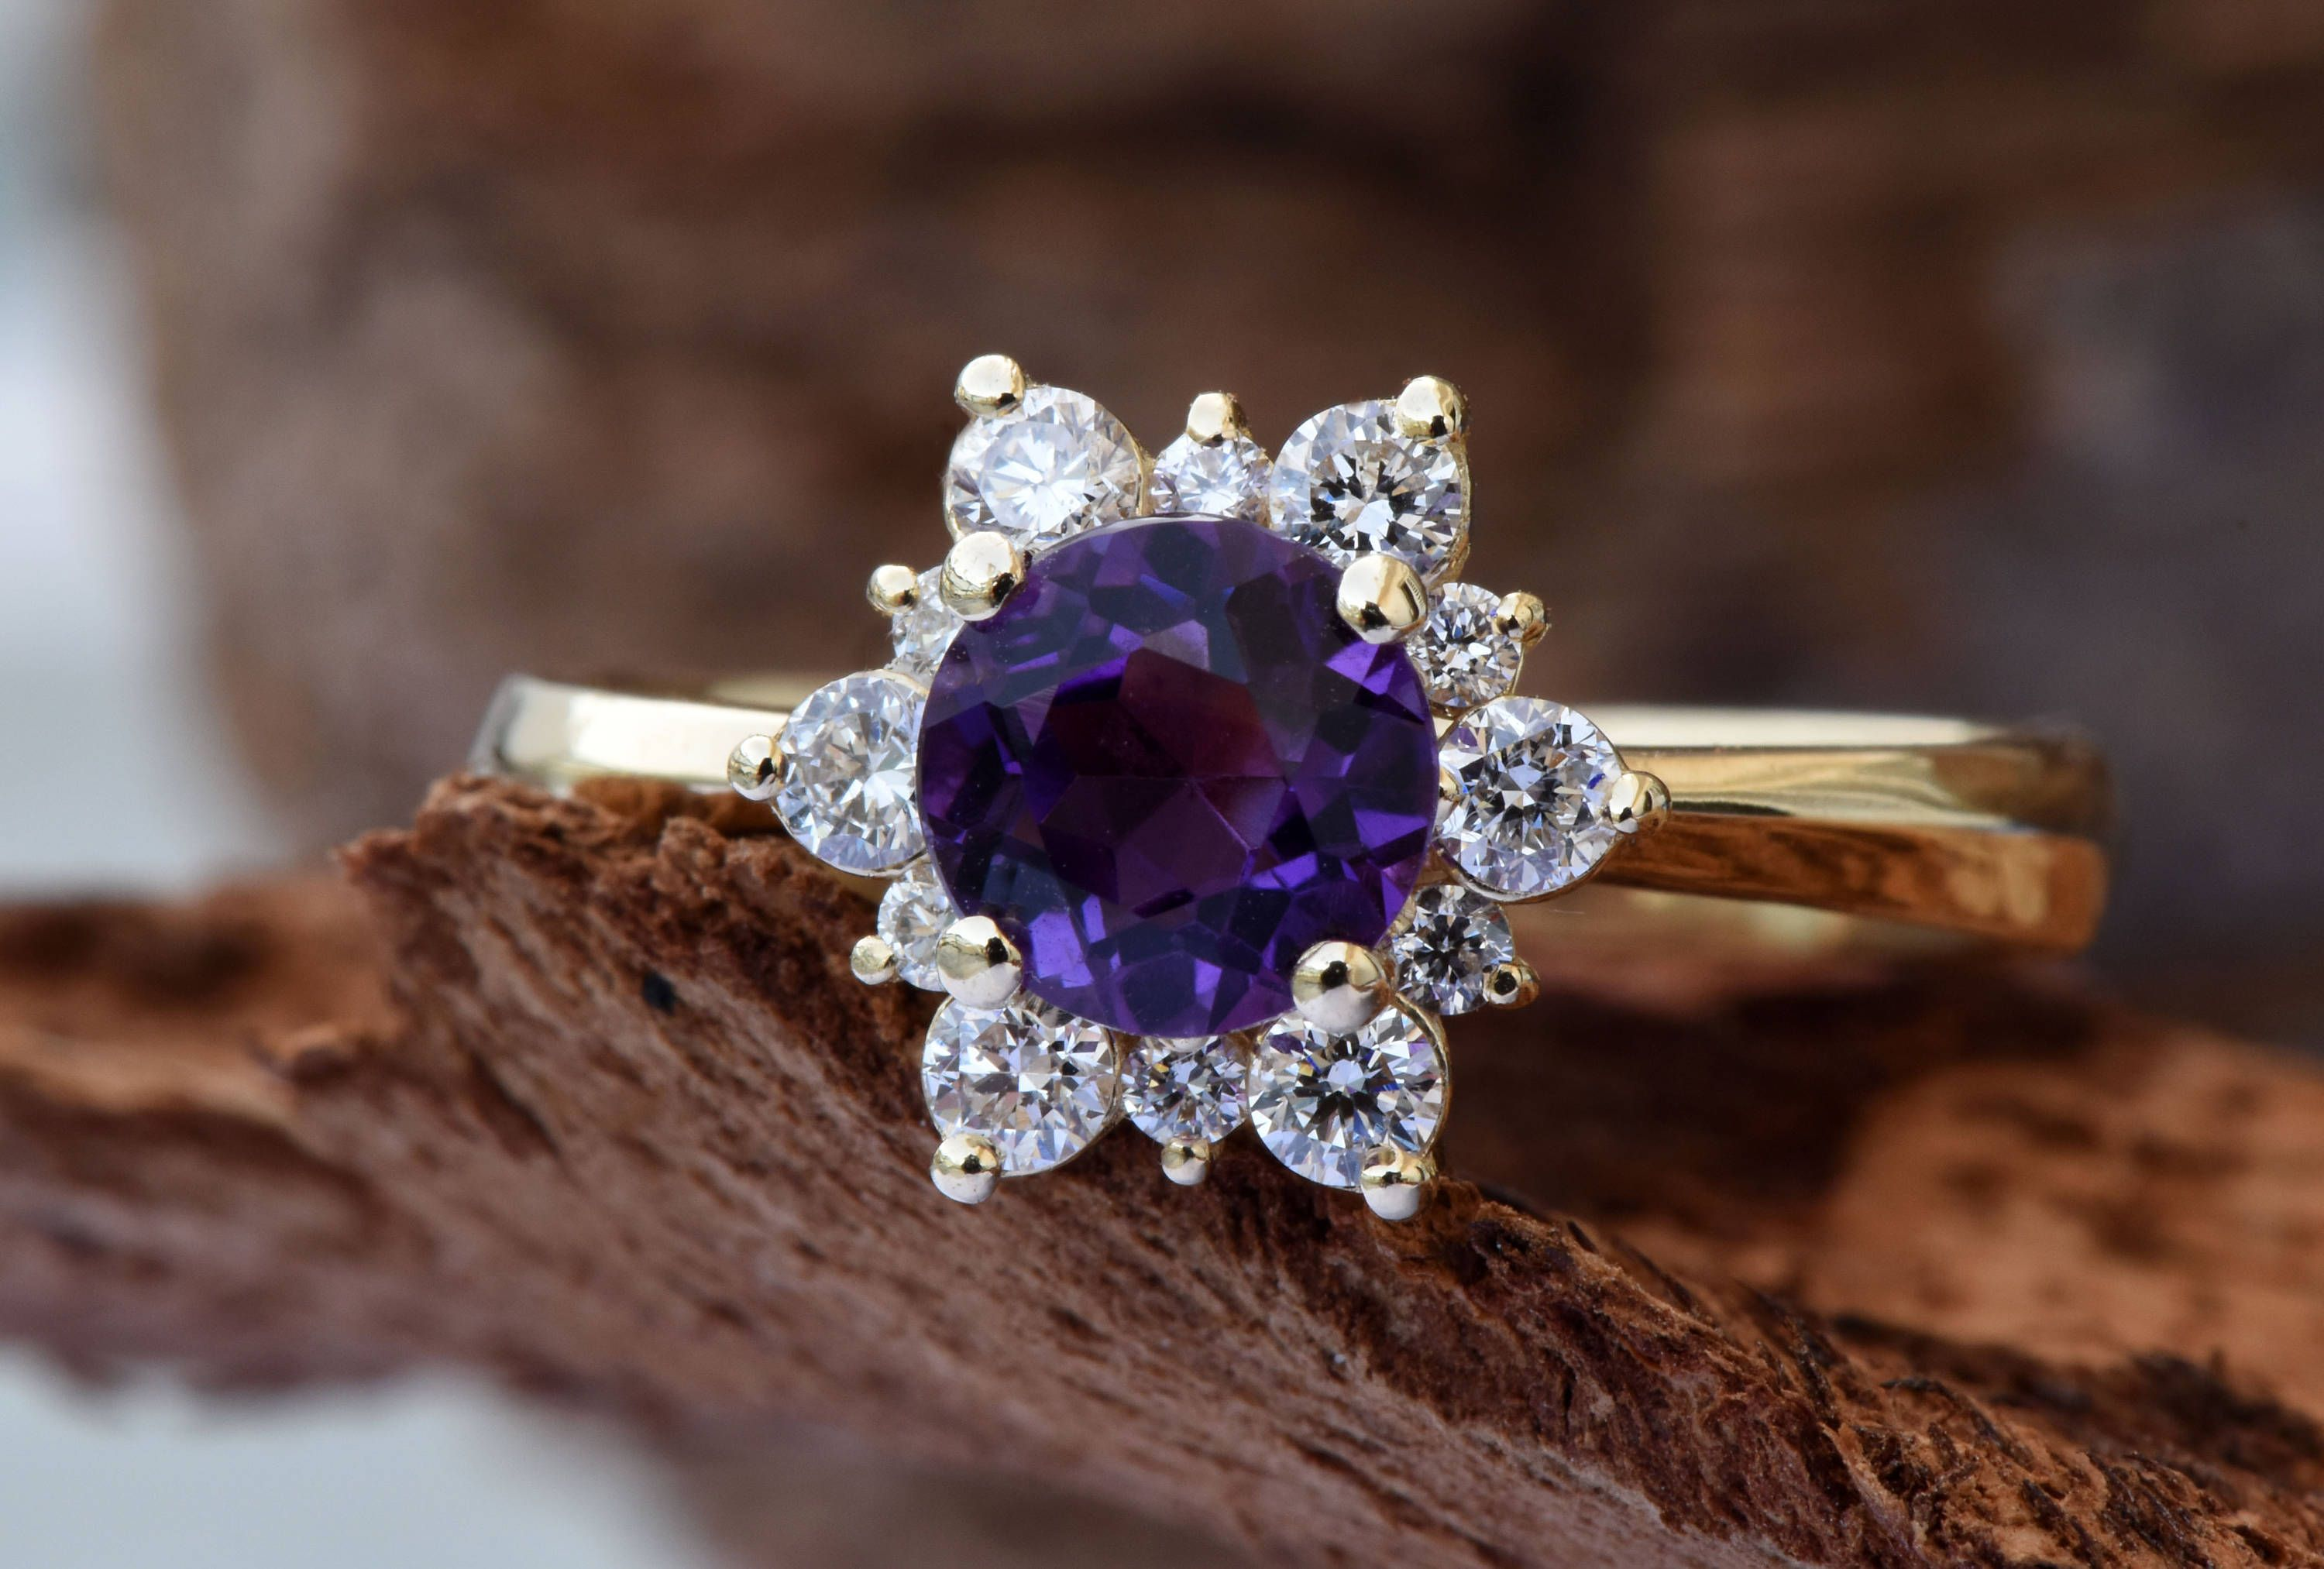 ring engagement gold trianglecocktailrngamethystfront marcia ncb yg amethist budet rings products triangle cocktail amethyst